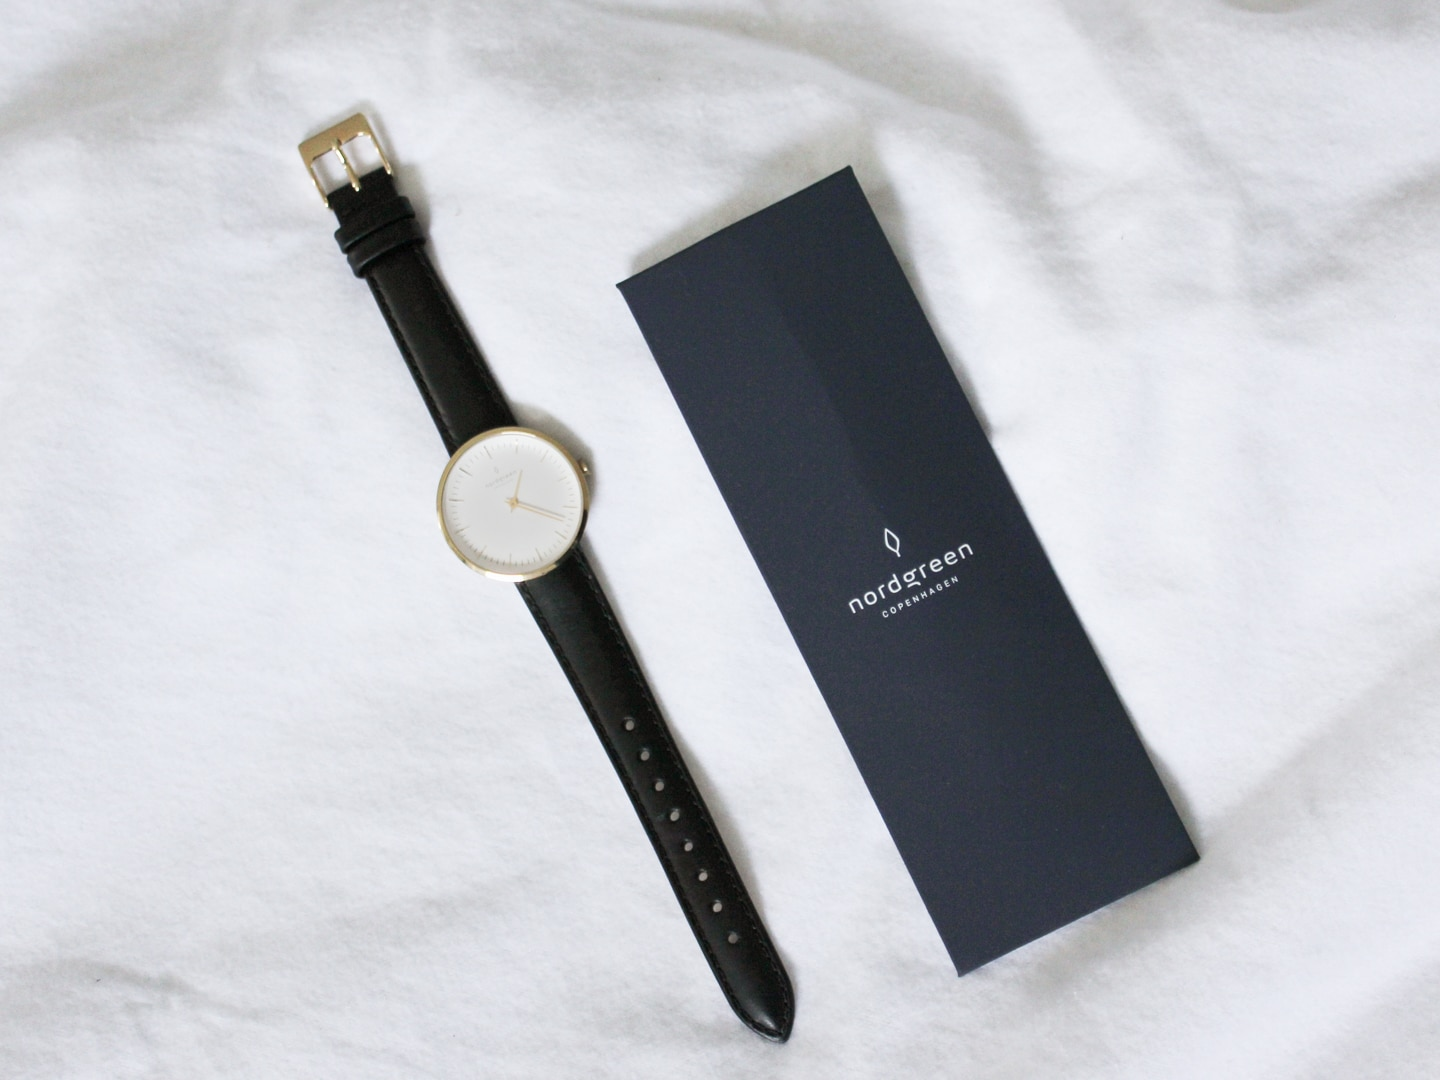 Nordgreen watch and cardboard strap case